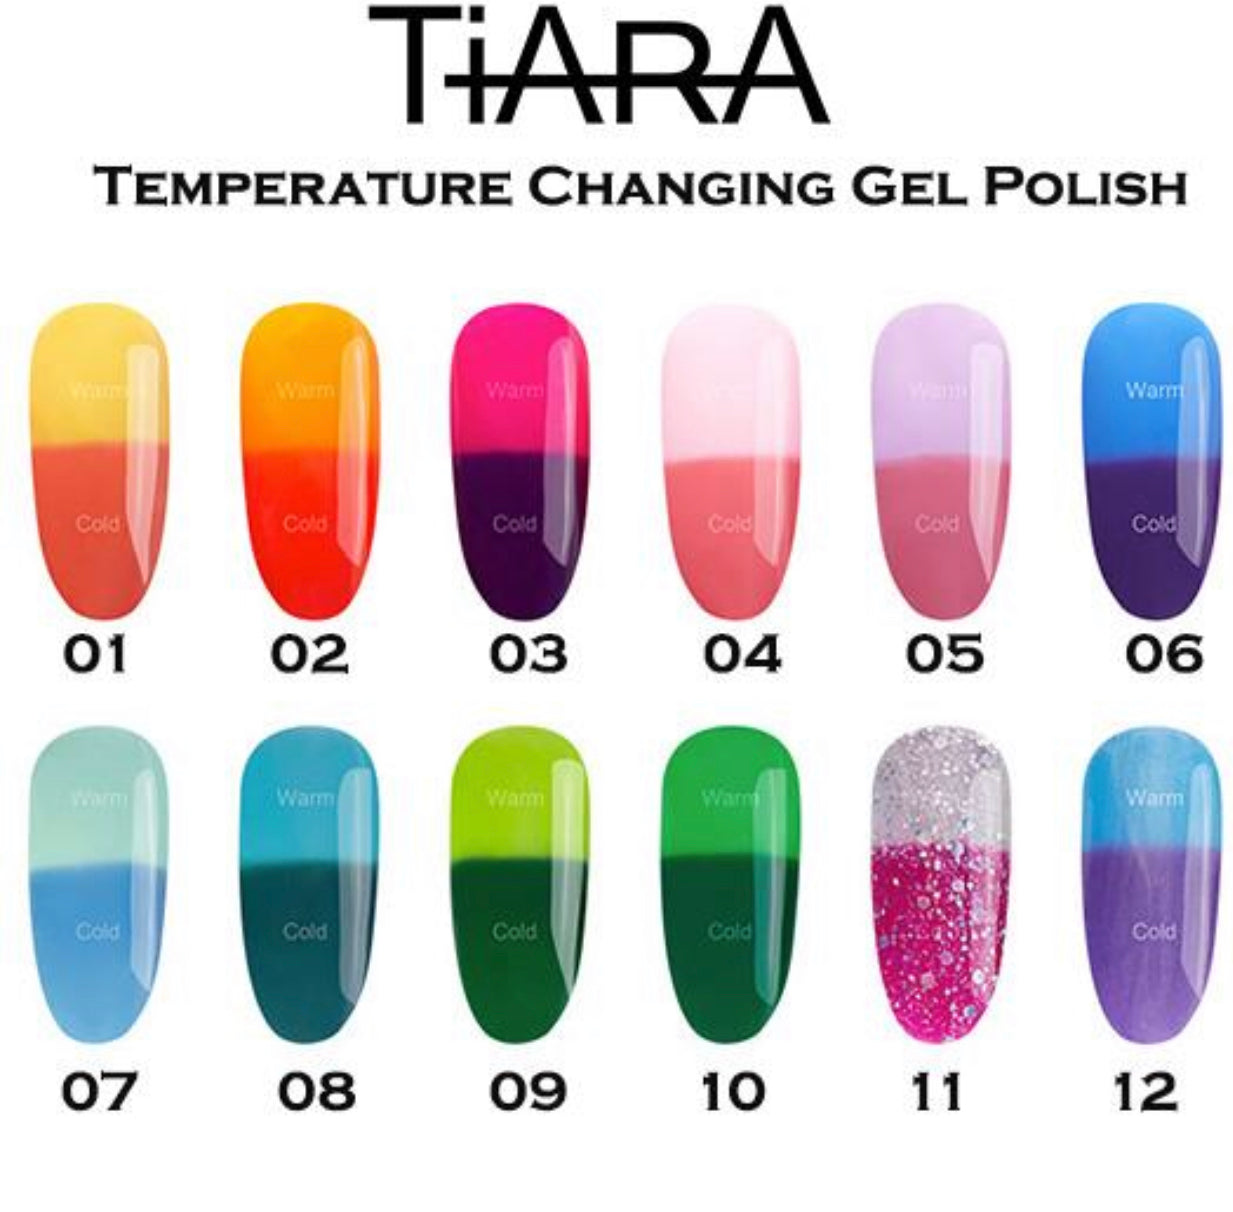 TiARA TEMPERATURE CHANGING GEL POLISH